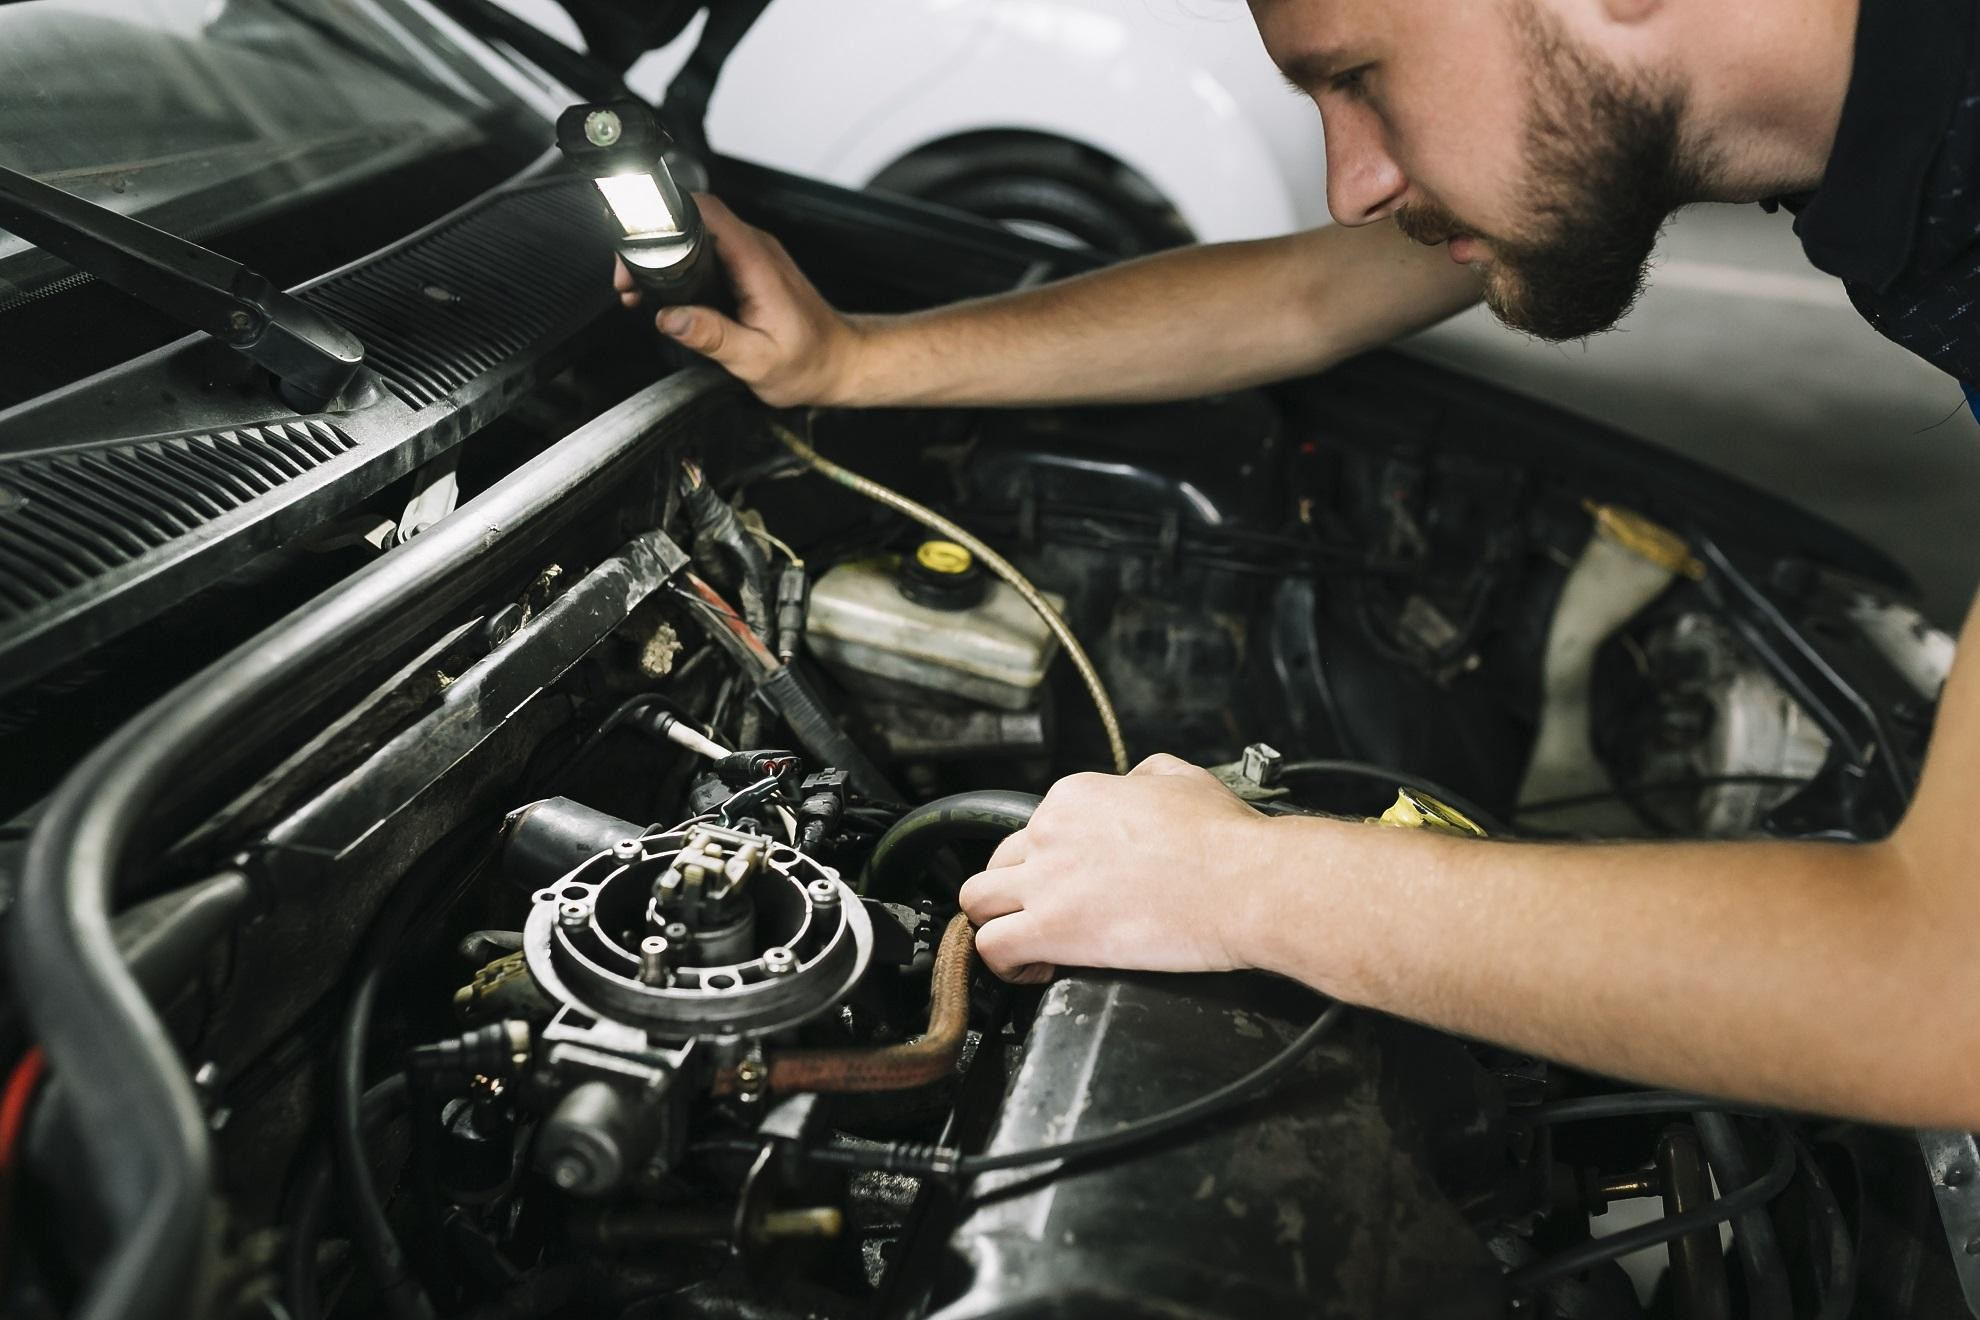 Mechanical Repair Business for Sale, Newcastle area NSW